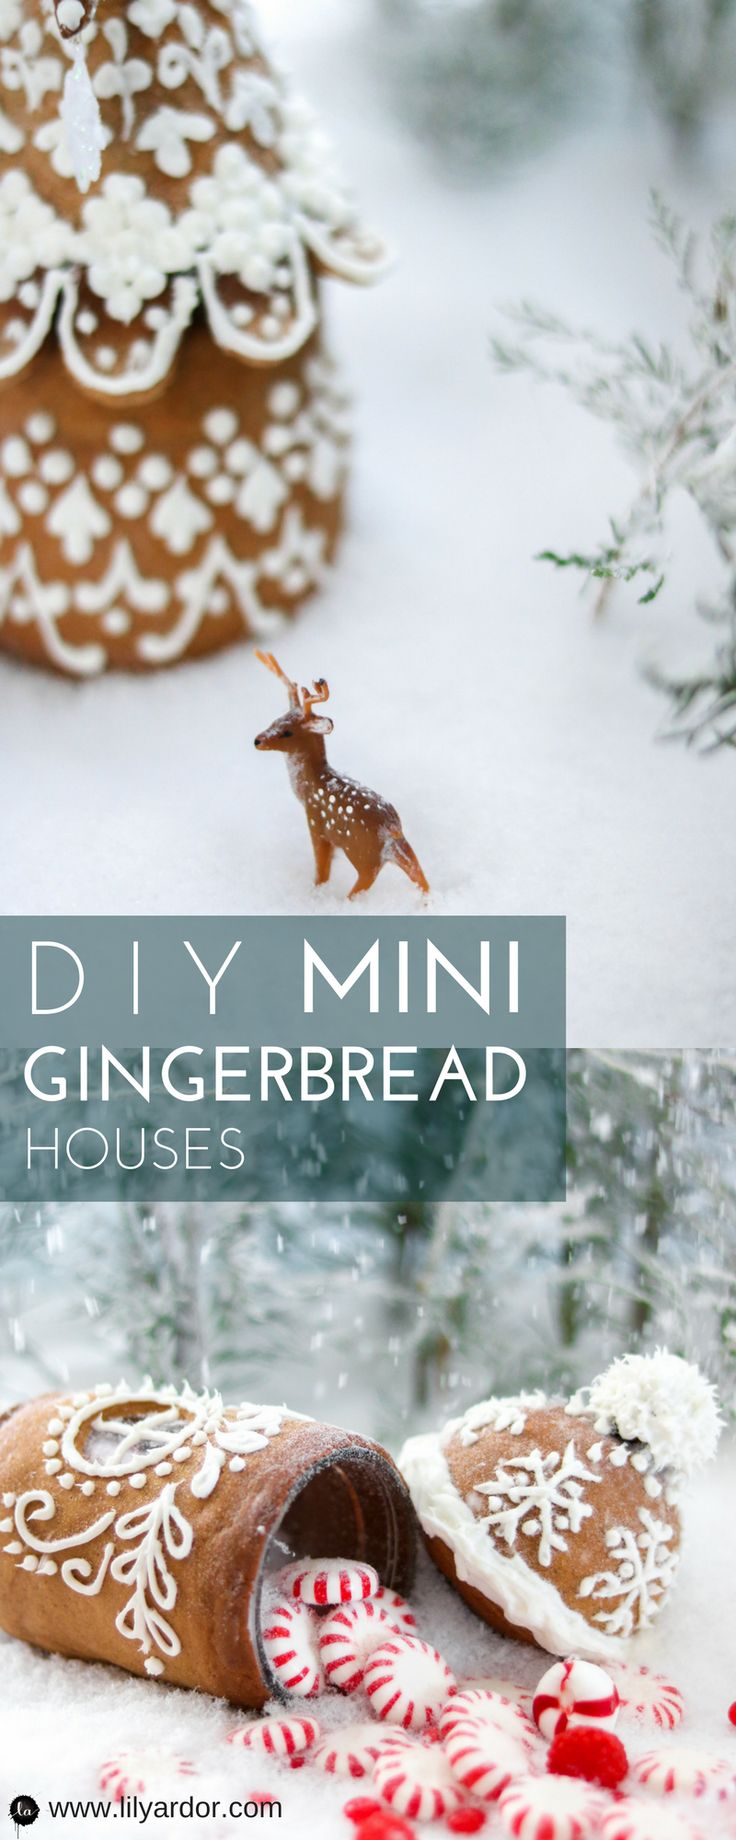 Your kids will decorating these mini gingerbread houses. Check out the easy recipe!